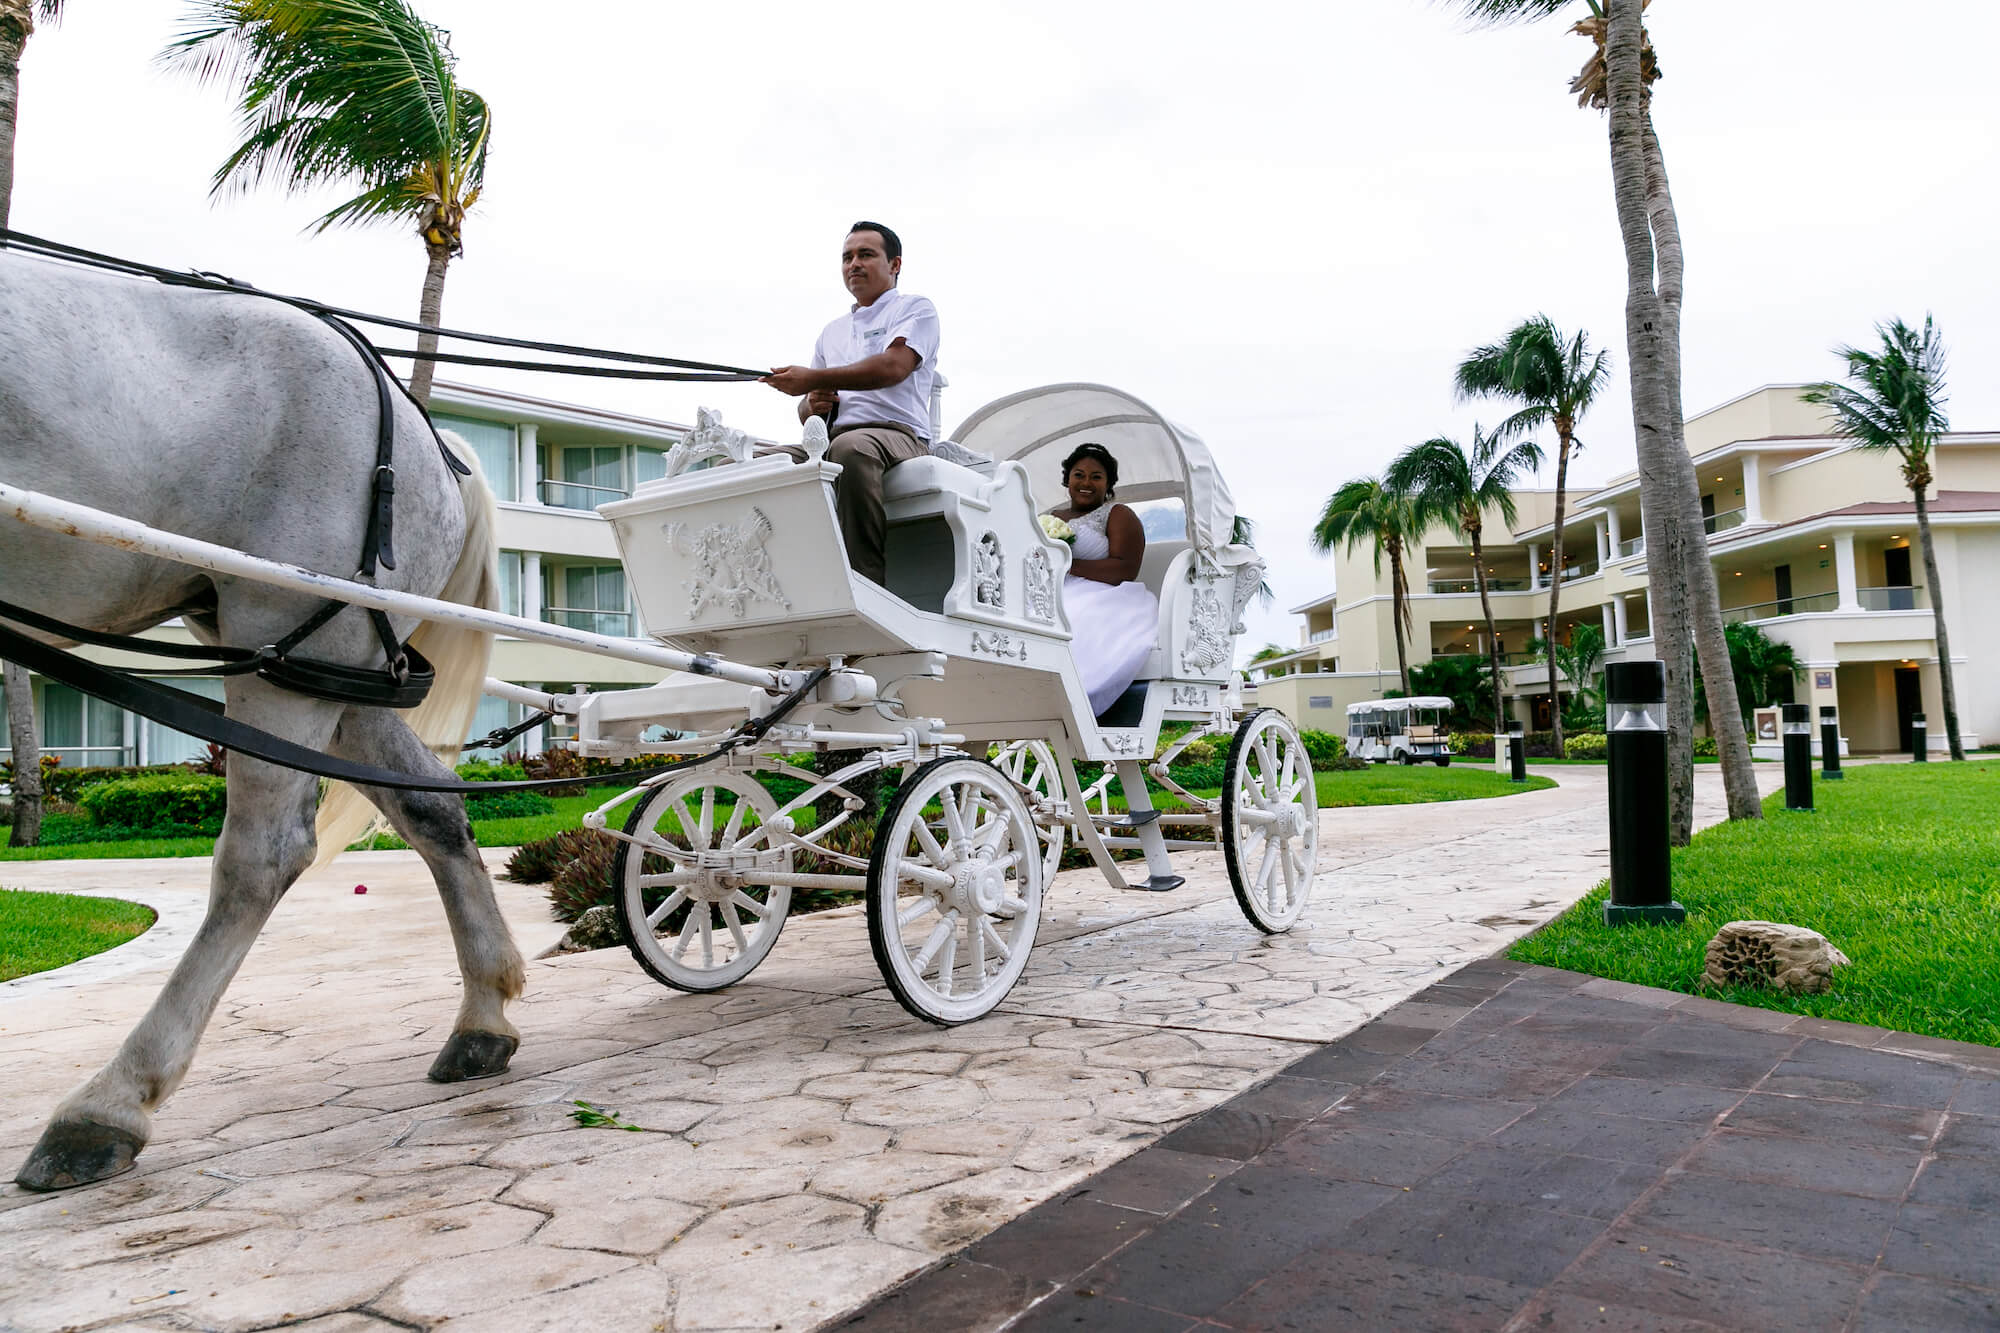 tressa-how-to-plan-a-destination-wedding-in-cancun-mexico-moon-palace-resort-black-destination-bride-destiland-desti-guide-to-destination-weddings-horse-carriage.jpg